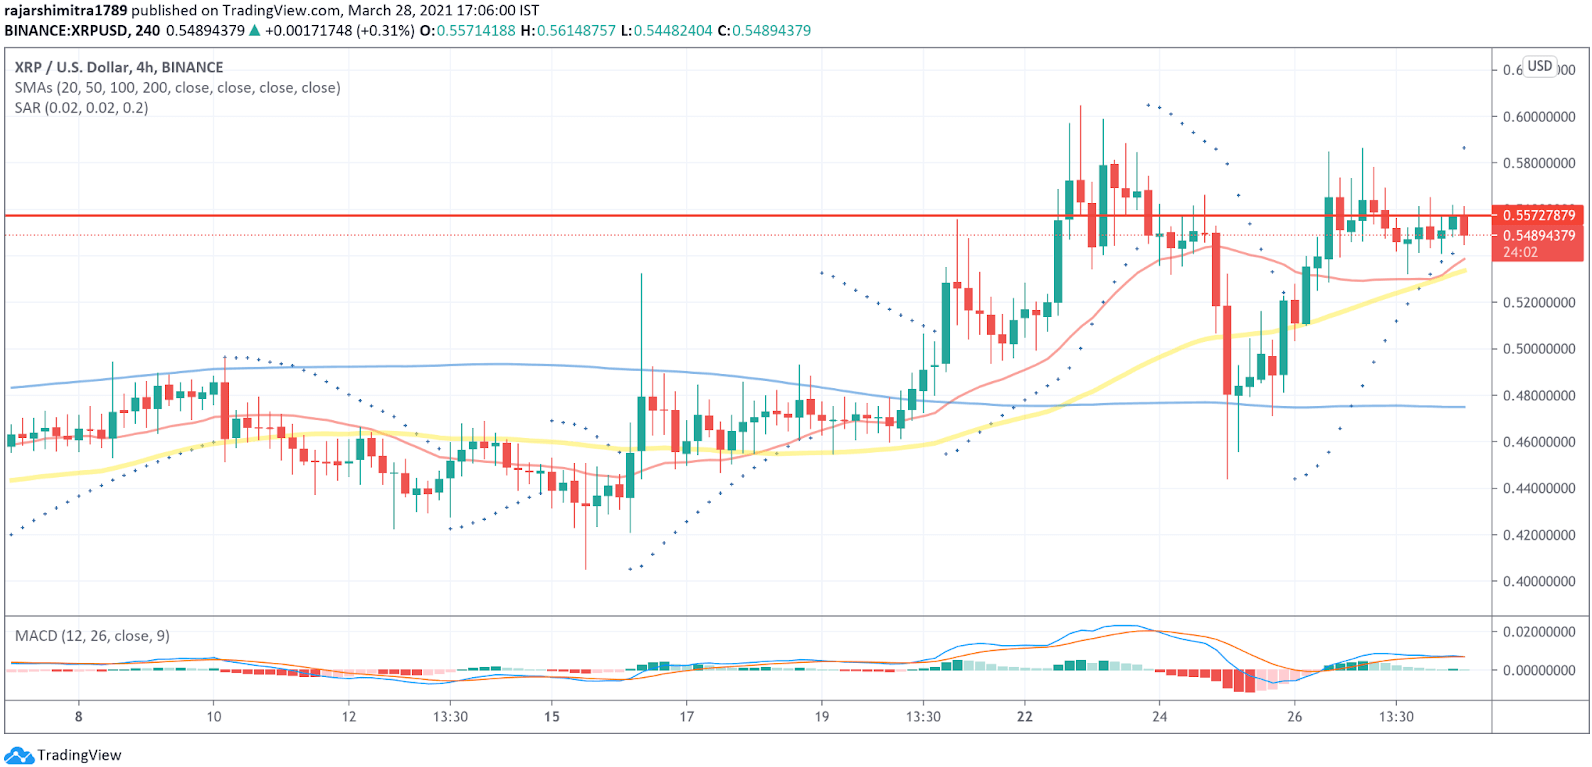 XRP/USD 4-hour chart 032921